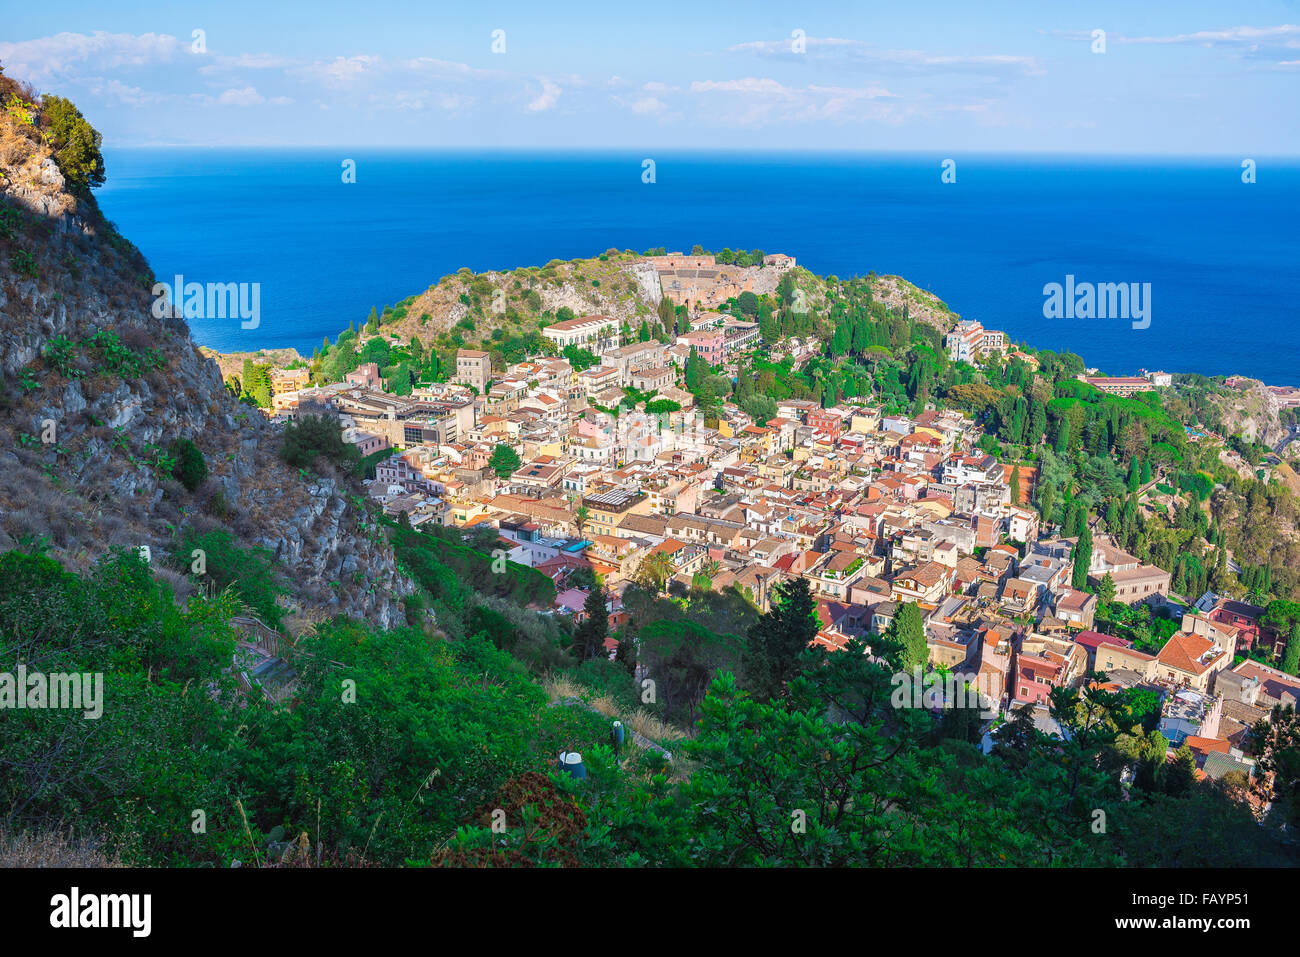 Taormina Sicily, view of Taormina and the Mediterranean Sea from heights overlooking the city, Sicily. - Stock Image